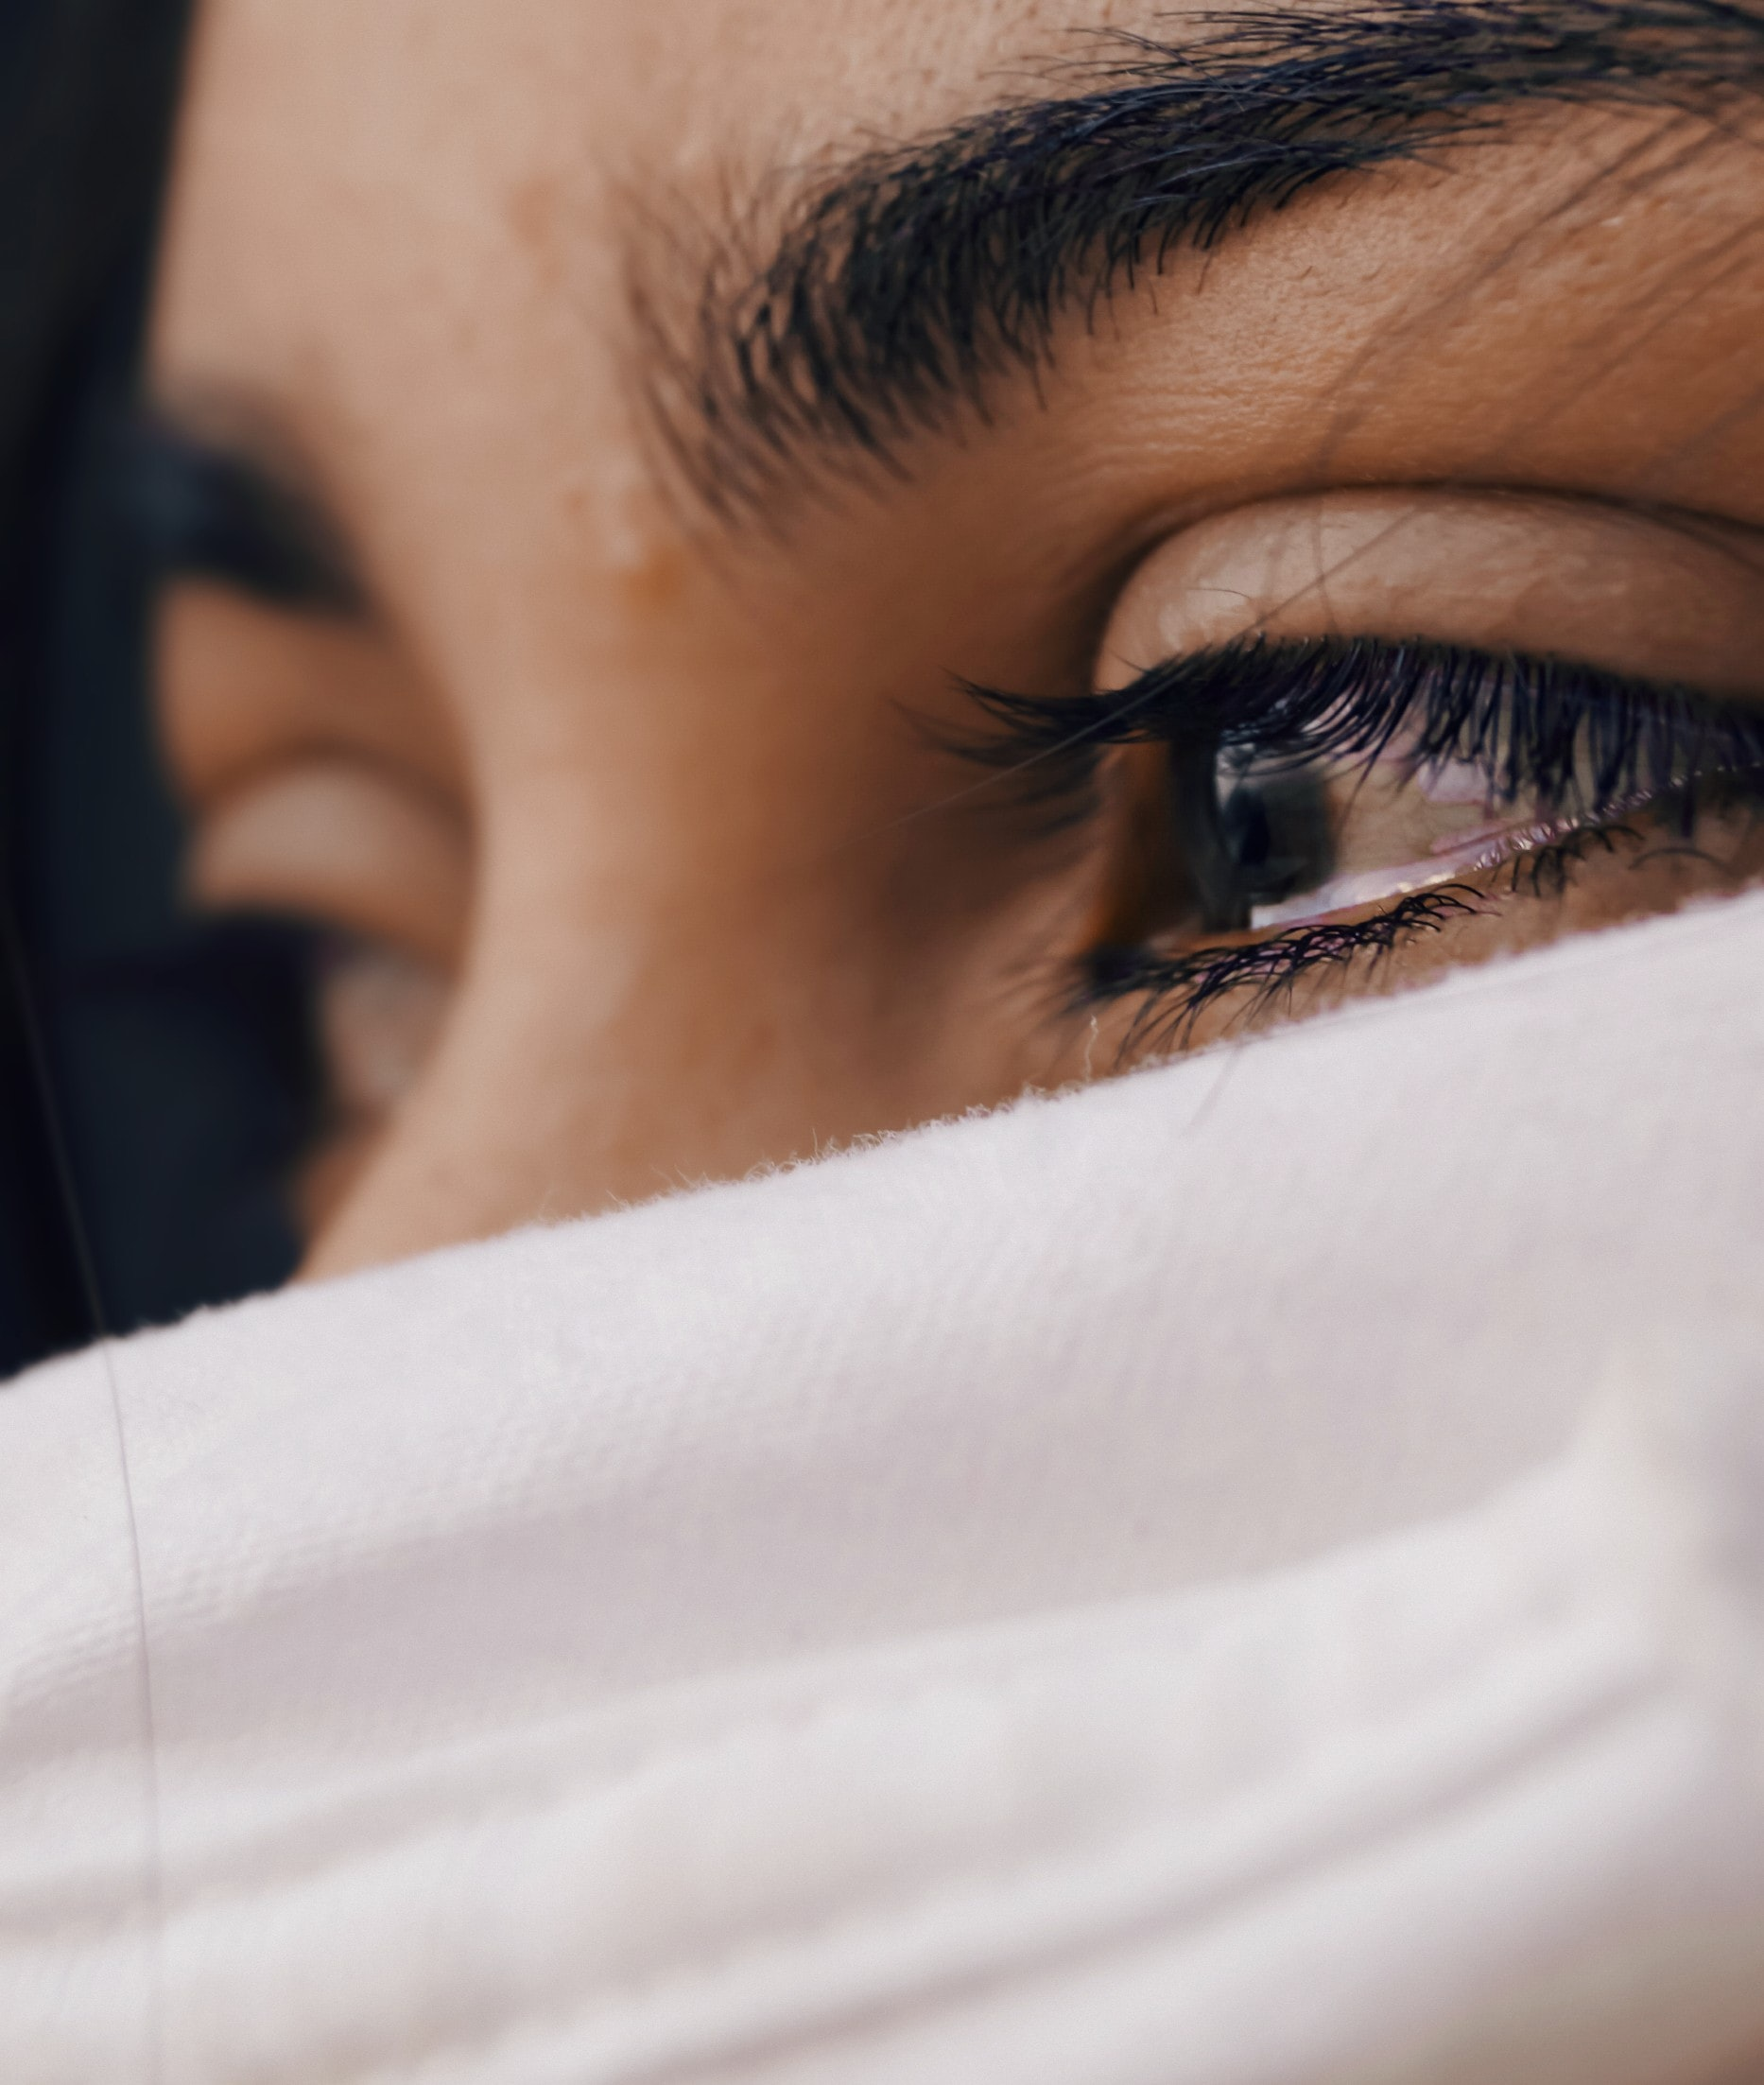 a close up of image of woman with tears in her eyes